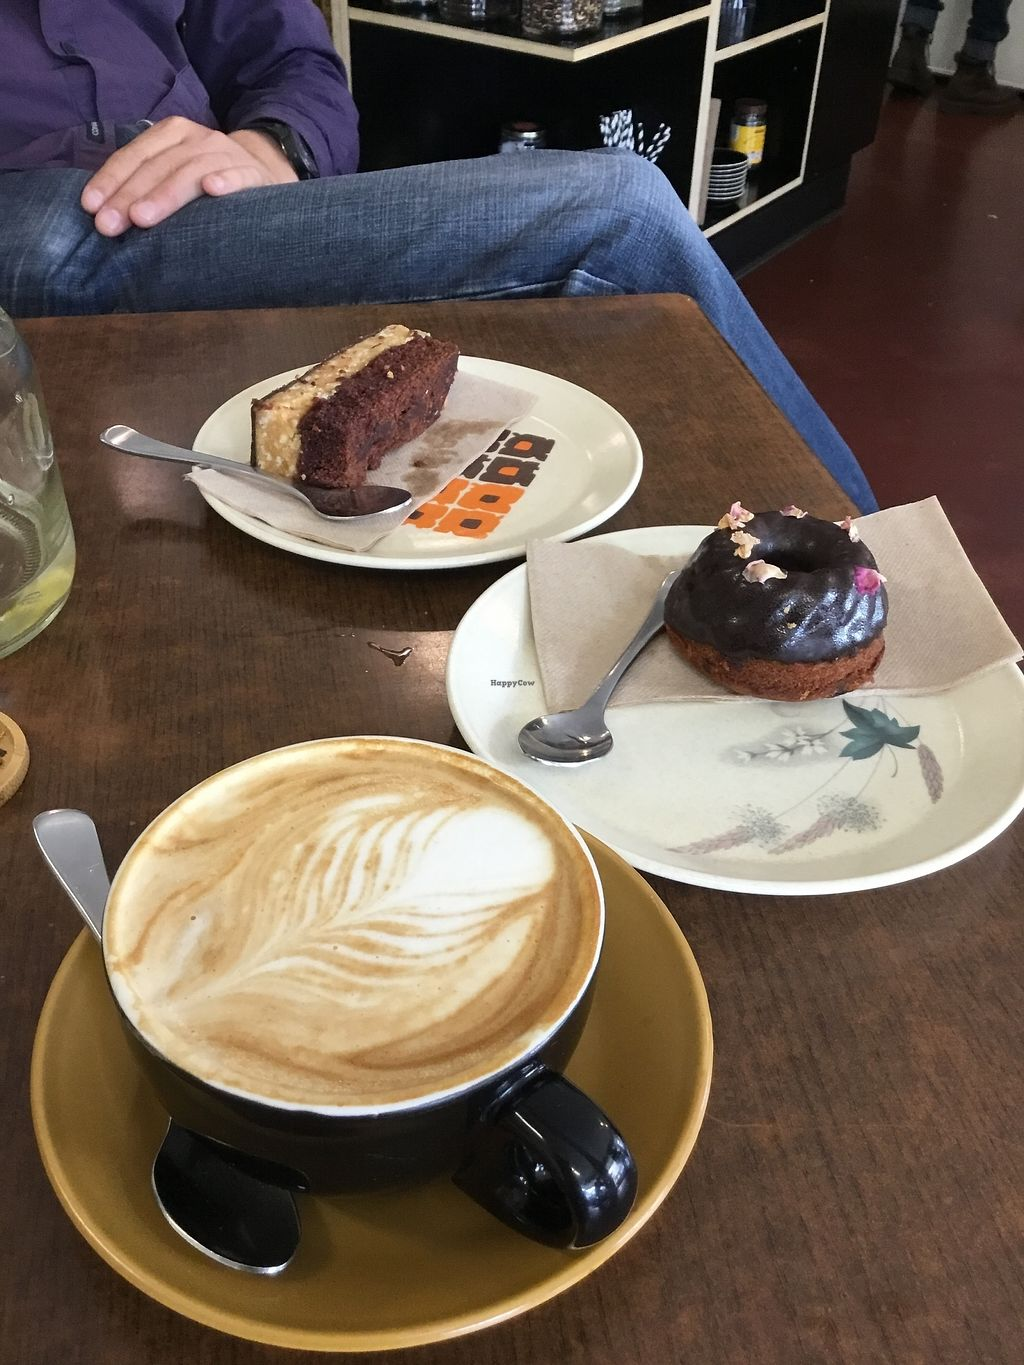 """Photo of Straight Up  by <a href=""""/members/profile/VeJo"""">VeJo</a> <br/>Coffee and desserts at Straight Up <br/> December 5, 2017  - <a href='/contact/abuse/image/51772/332487'>Report</a>"""